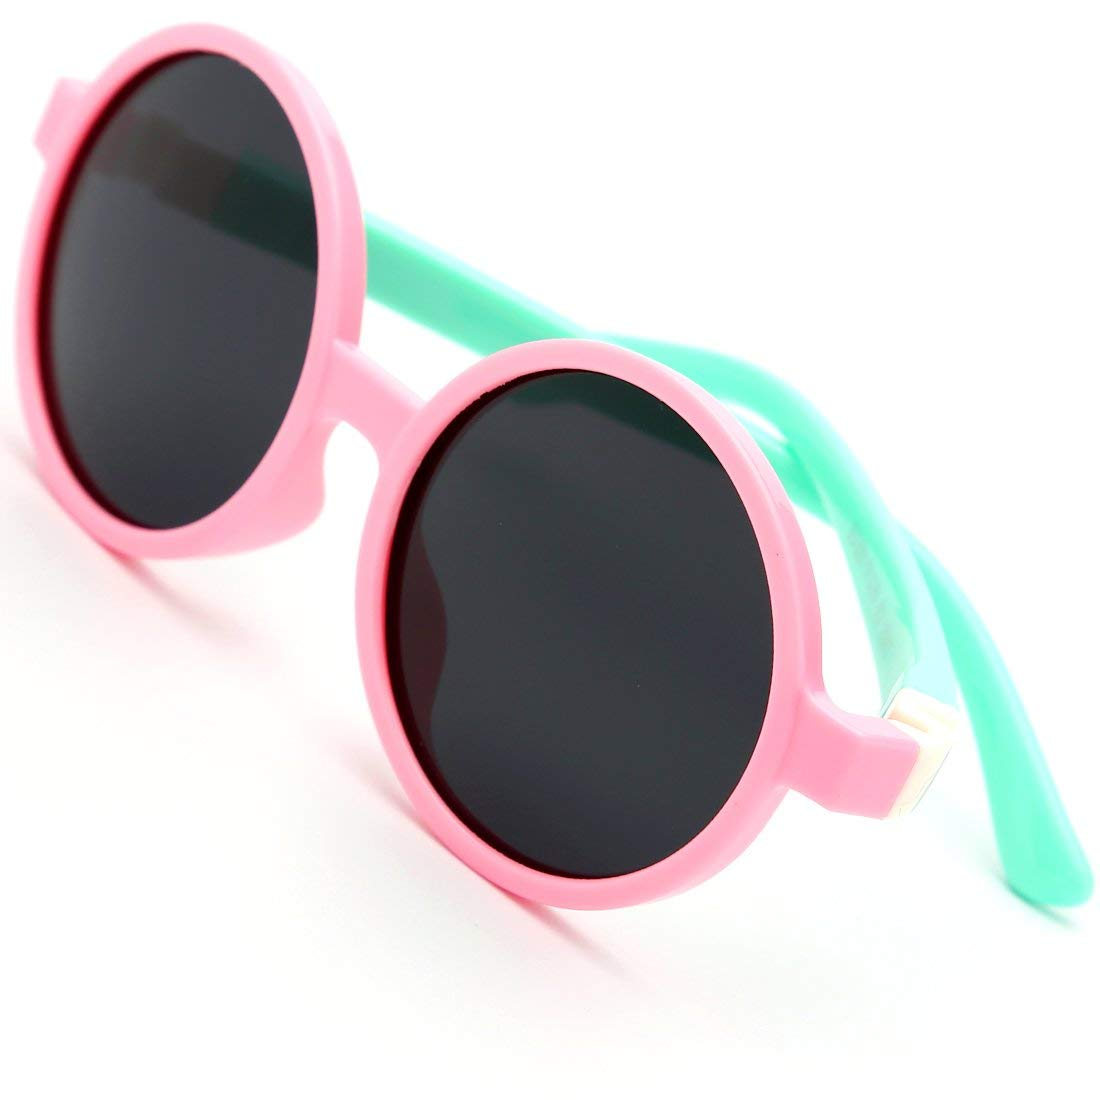 b532ccf959 Get Quotations · modesoda Kids Sunglasses Pink Soft Silicone Rubber Round  Sunglasses Polarized Lens